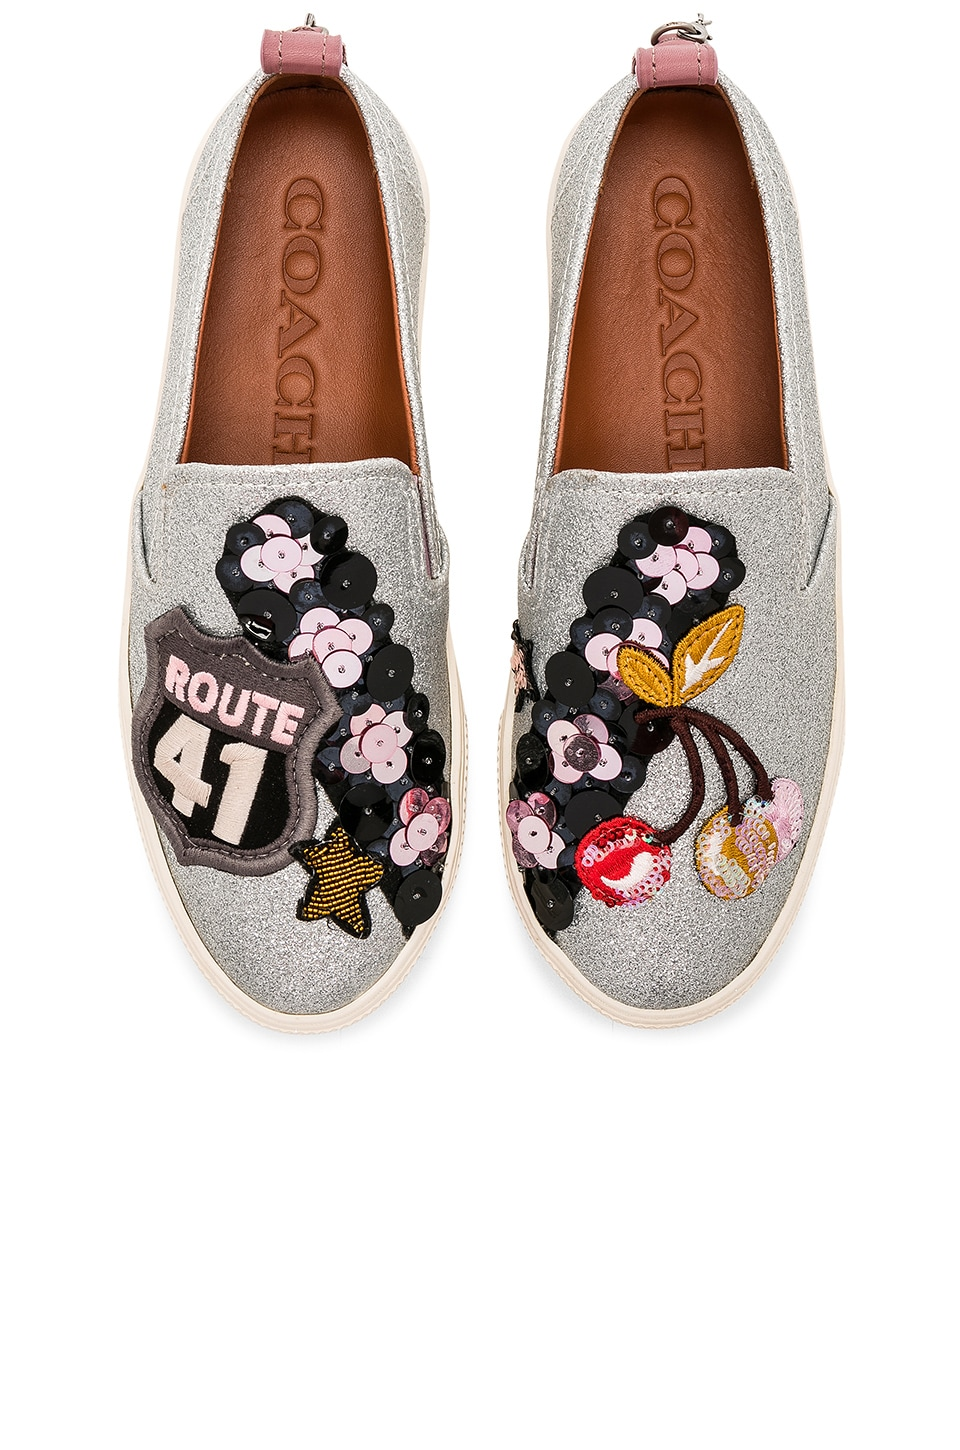 Coach 1941 Cherry Patches Slip On Sneaker in Silver